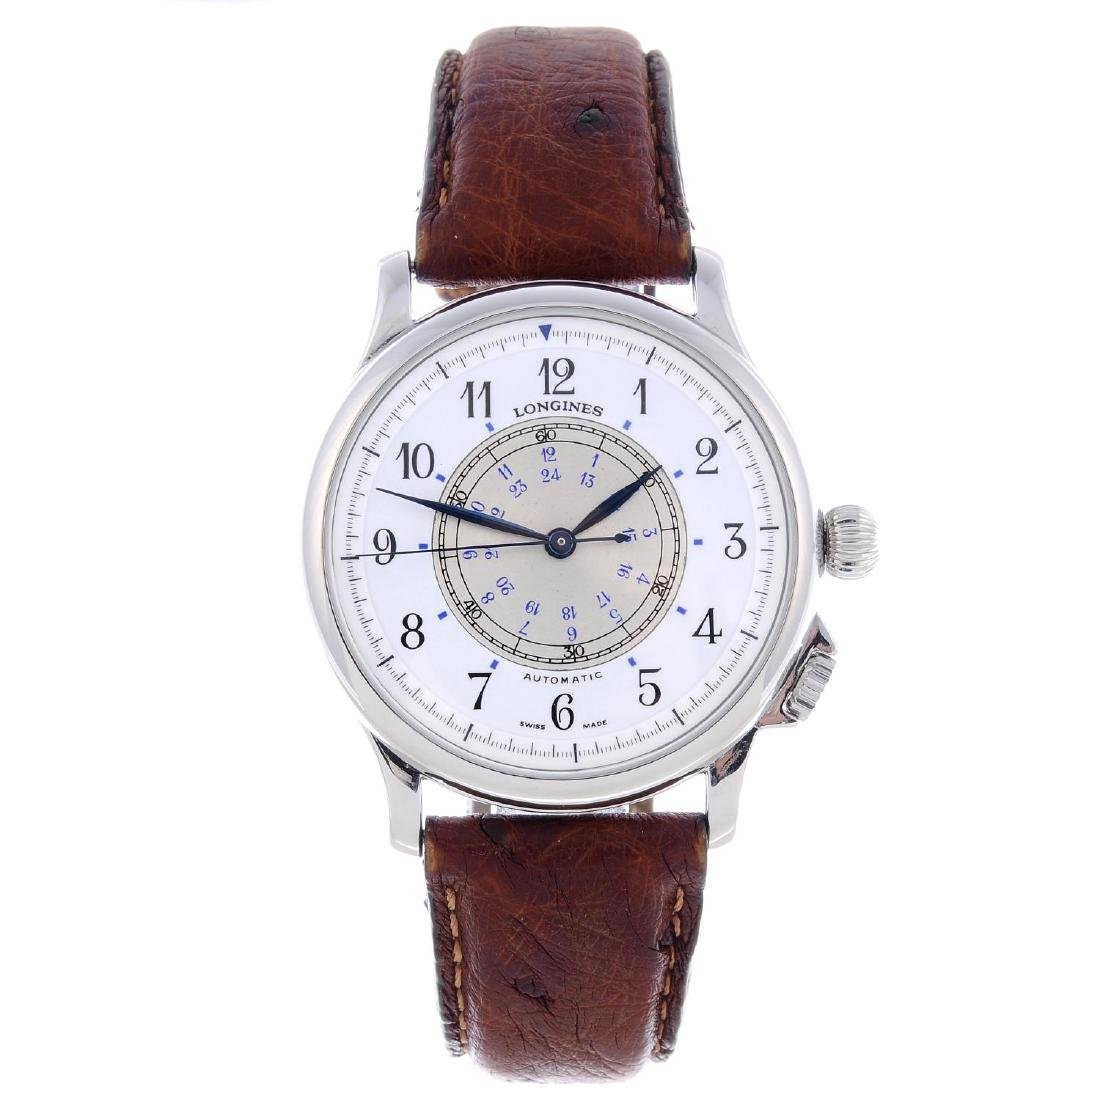 LONGINES - a gentleman's Navigation wrist watch.